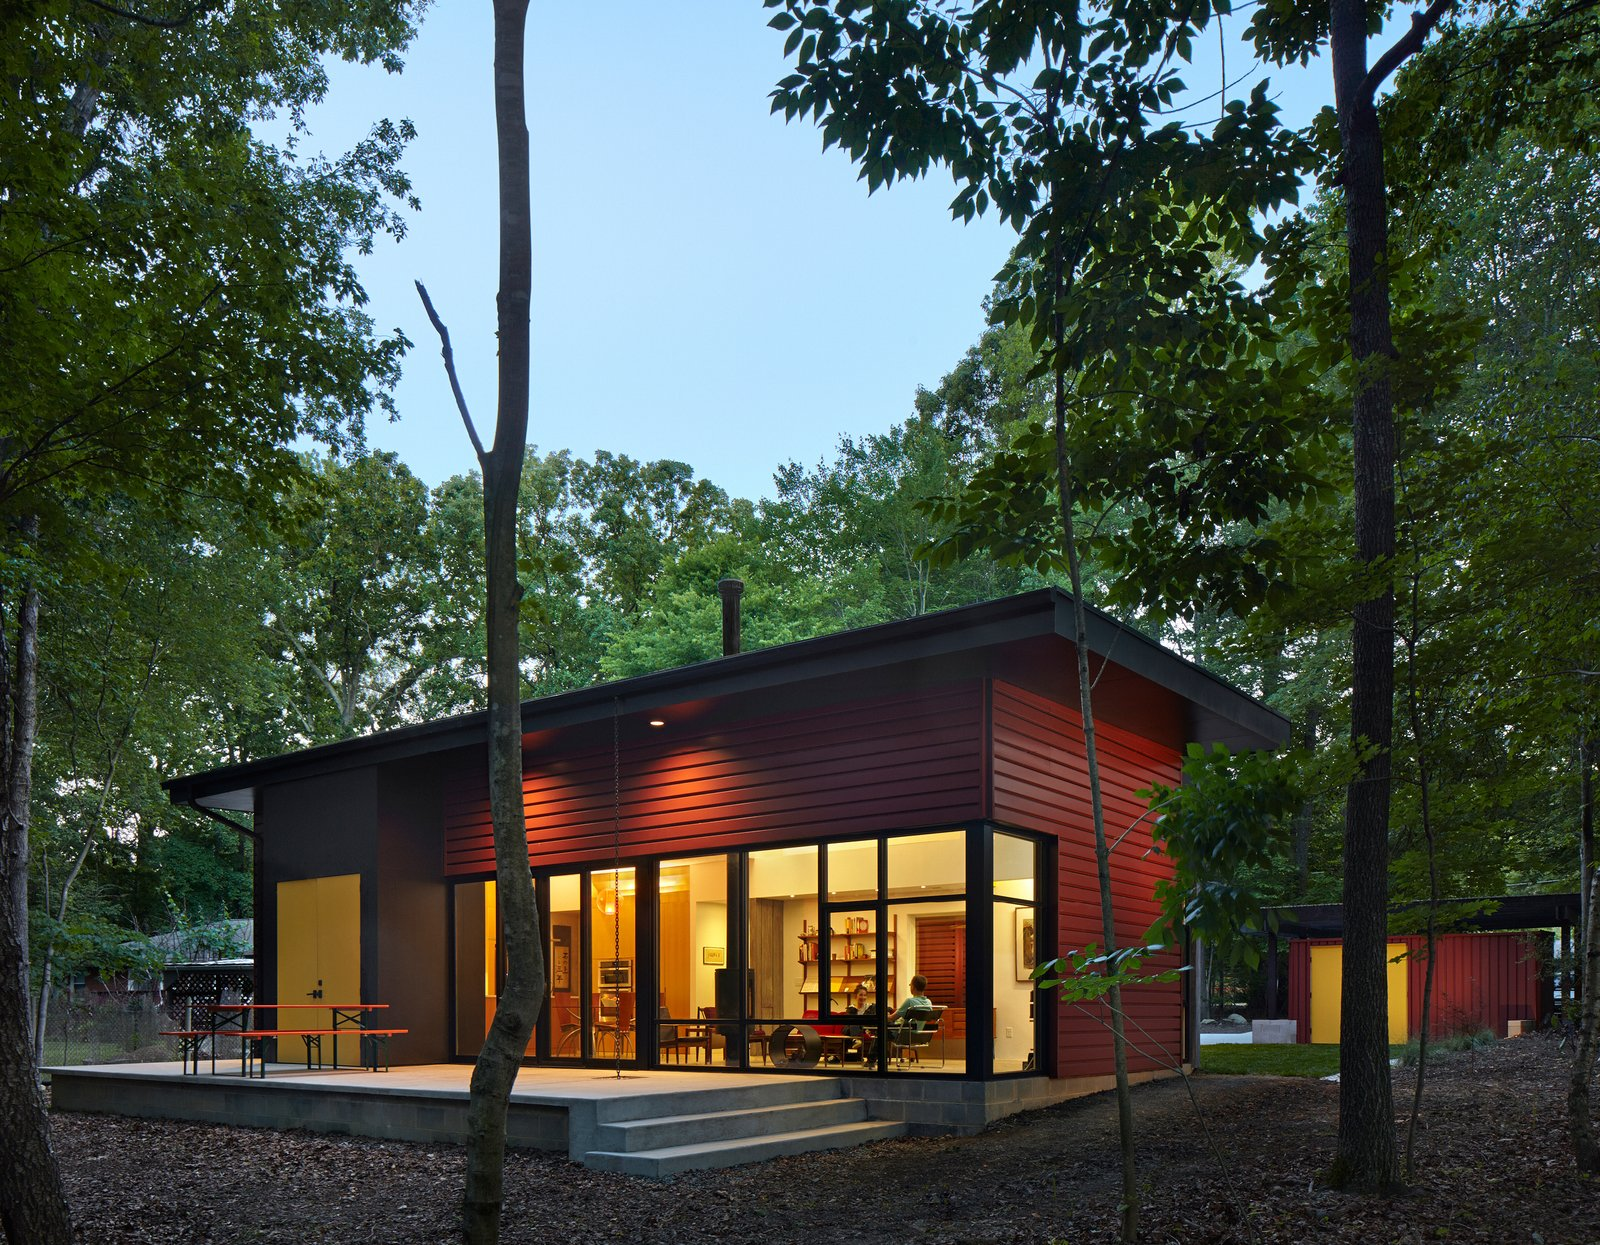 "Exterior, Metal Siding Material, and House Building Type Nestled in a forest, the residence consists of three volumes. The patio, enhanced by a German-made beer garden table, is an extension of the living room floor, creating an indoor-outdoor living space. ""It's one way a small space can be made to feel larger,"" says architect Jason W. Hart. All of the exterior doors are painted marigold, providing a friendly pop of color.  Tiny Homes from This Light-Filled Metallic Home Embraces Its Wooded Site"